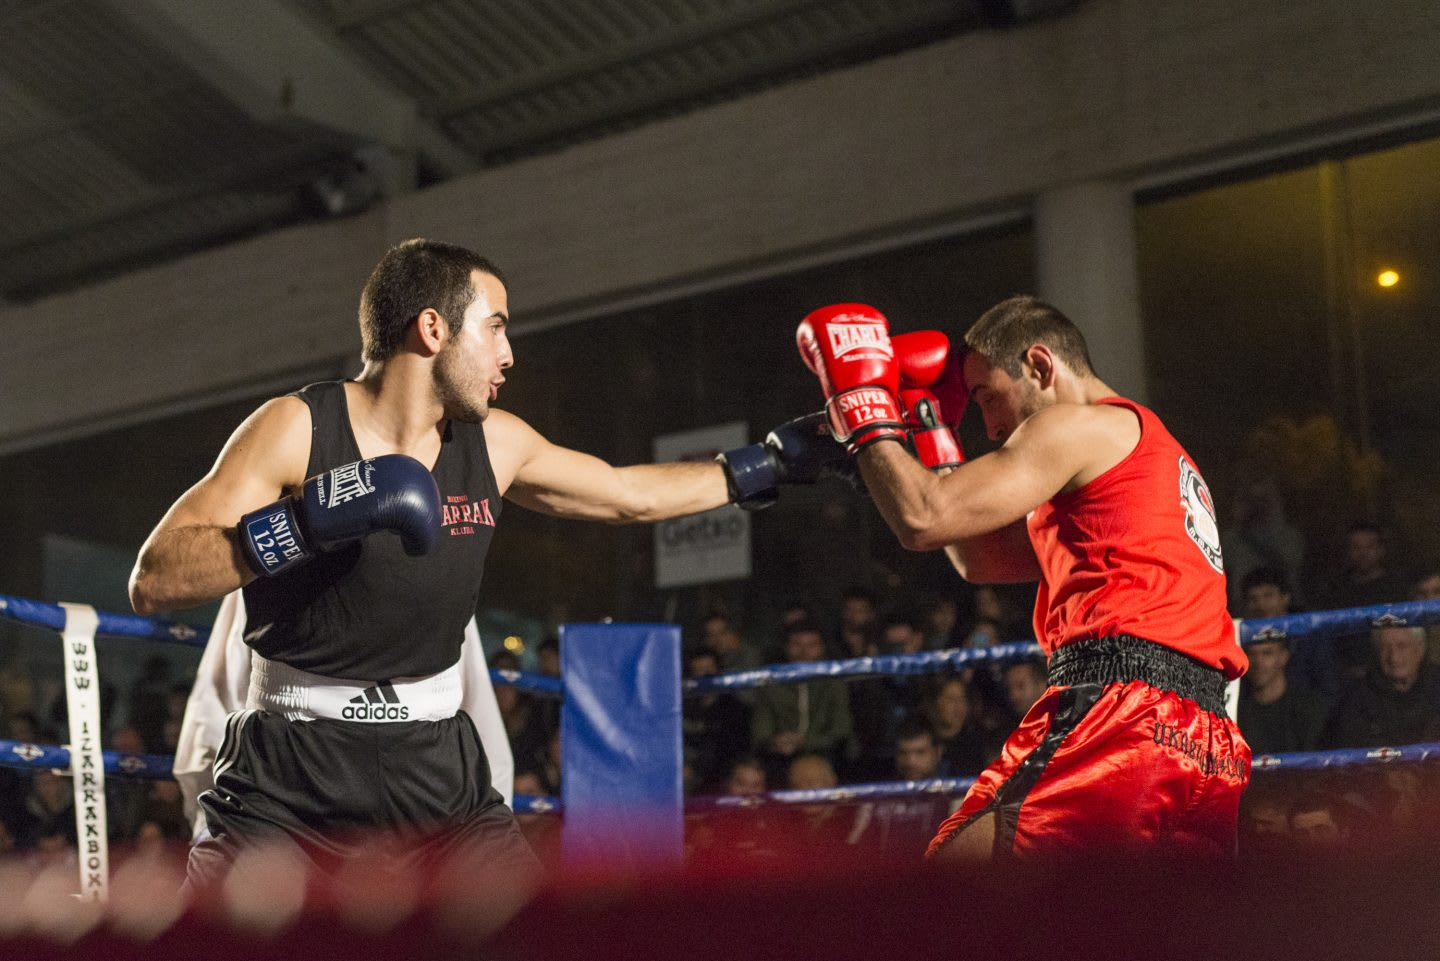 Two man fight in a boxing ring. boxing, sport, competition, strong, challenging